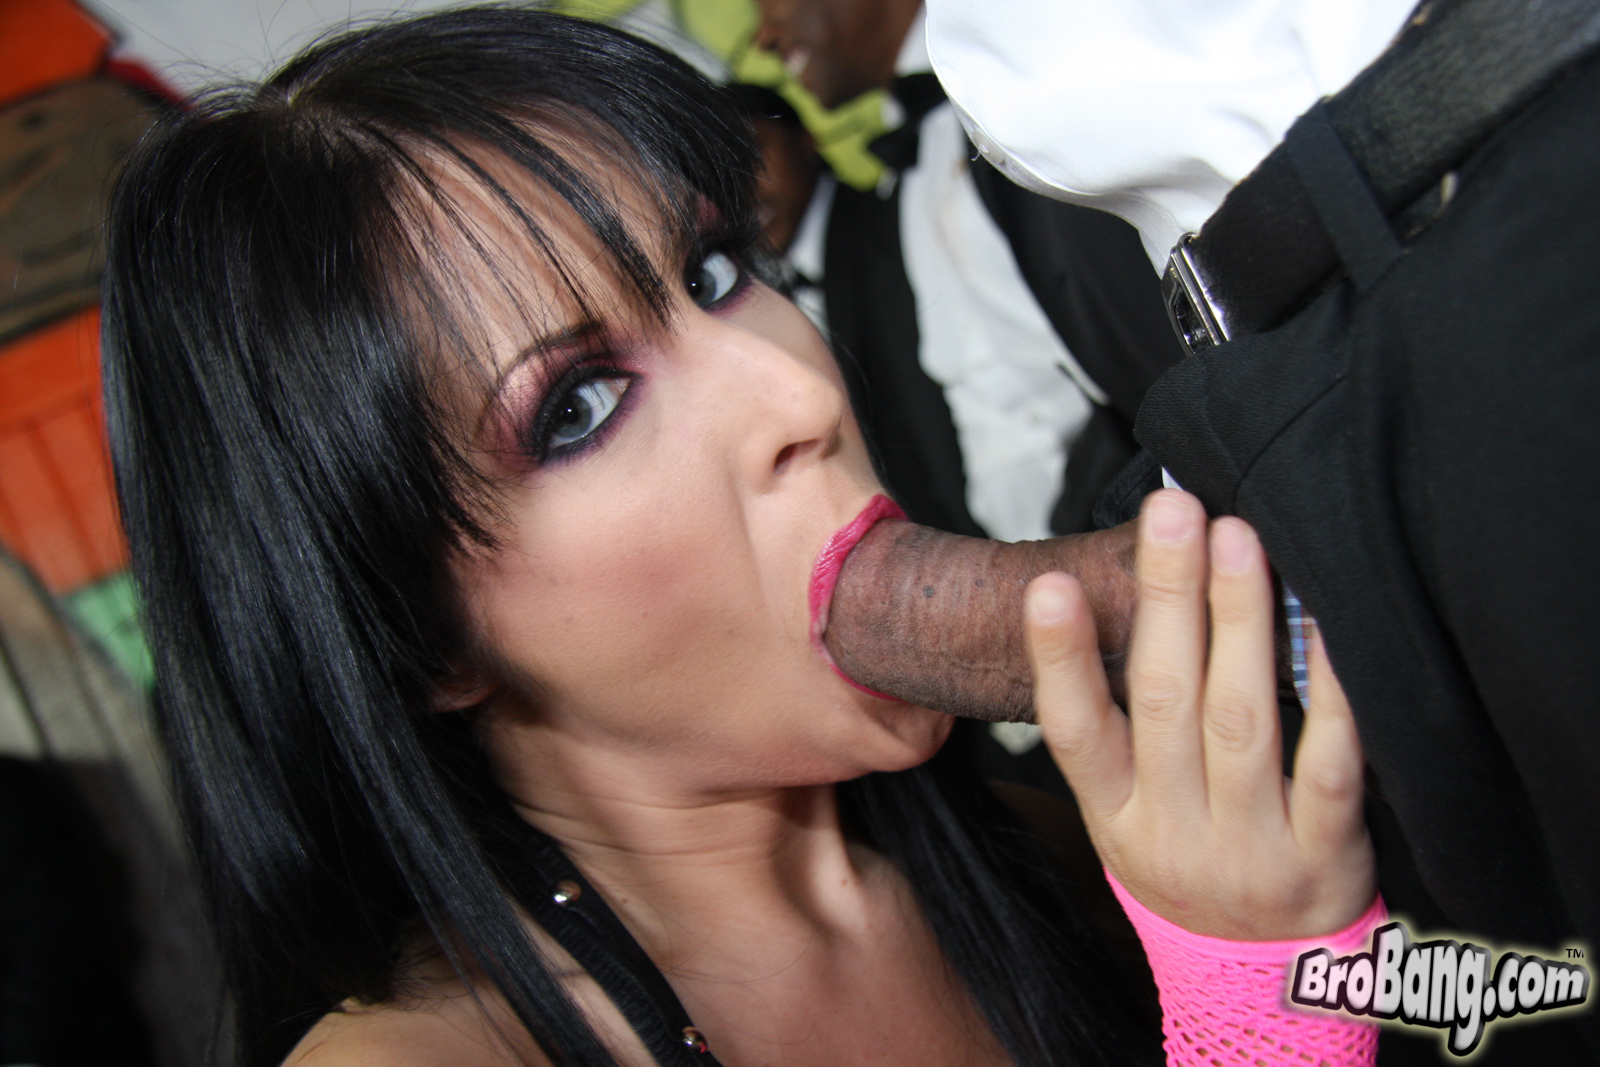 Insidious blowing and slurpy job from lovely slutty dolly with gentle feets